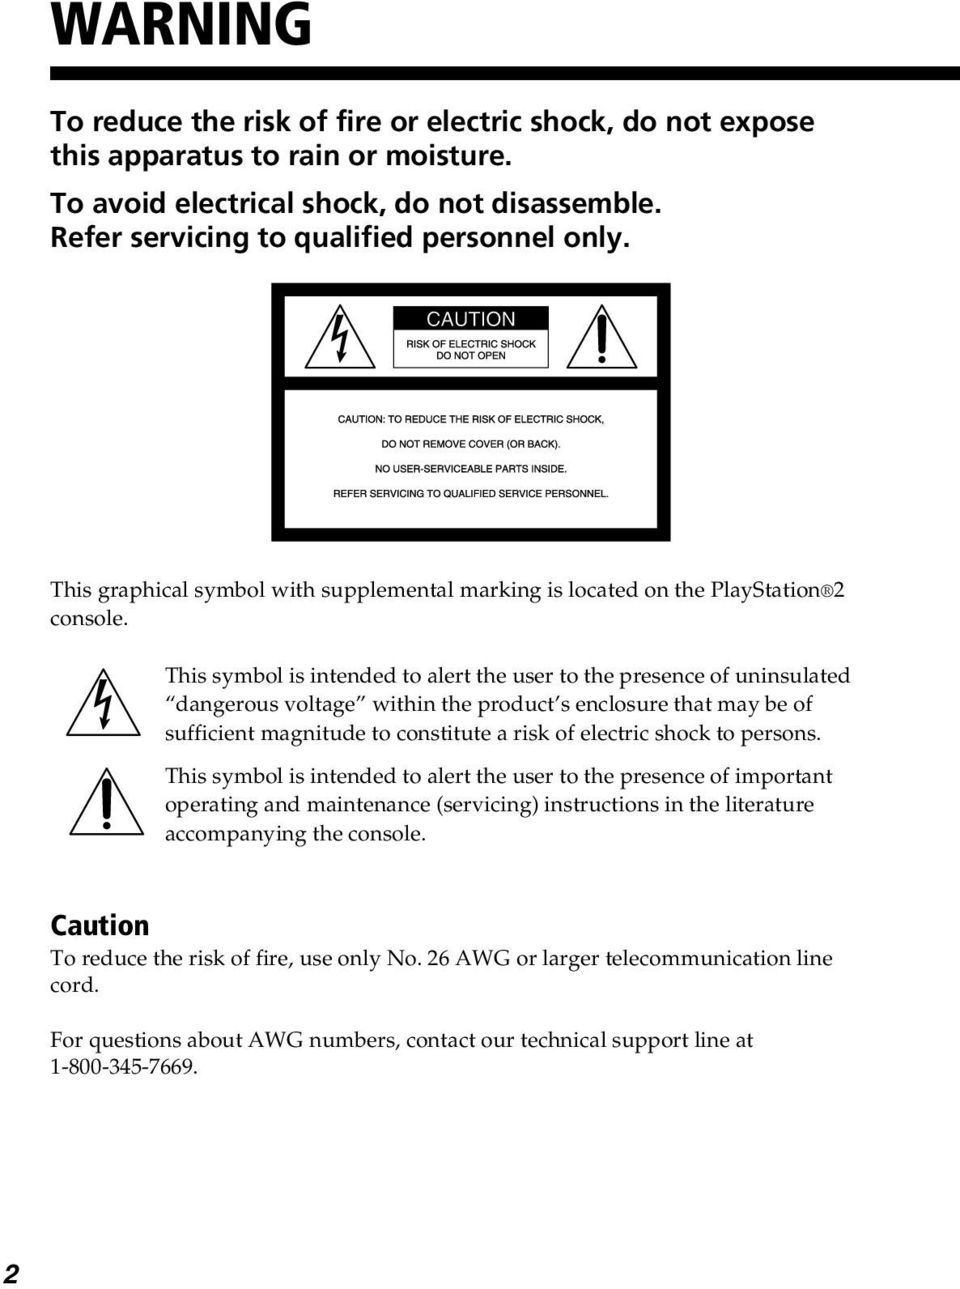 This symbol is intended to alert the user to the presence of uninsulated dangerous voltage within the product s enclosure that may be of sufficient magnitude to constitute a risk of electric shock to